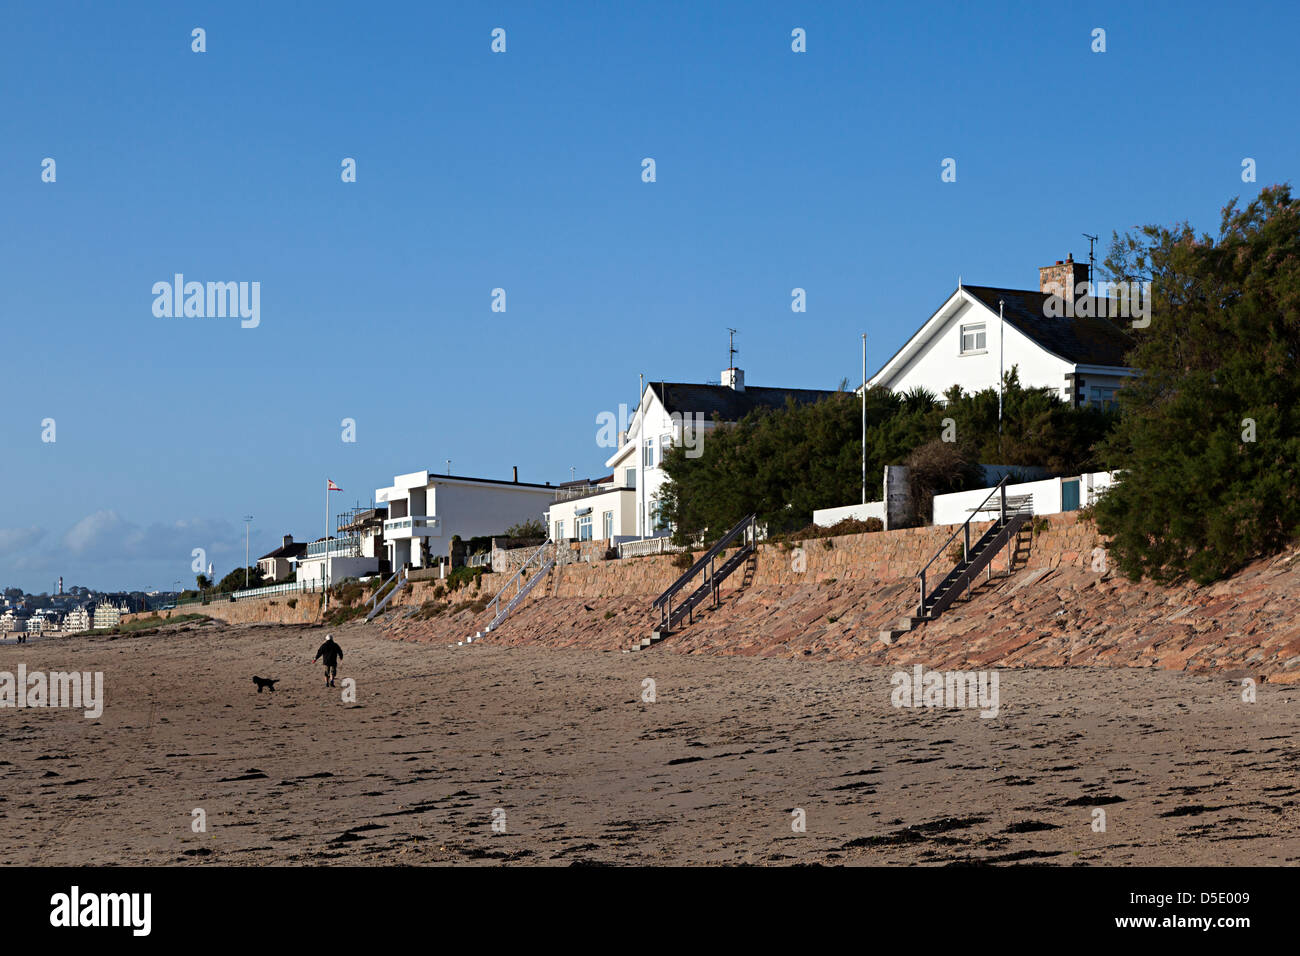 Houses with beach frontage and man walking dog, St Helier, Jersey, Channel Islands, UK - Stock Image